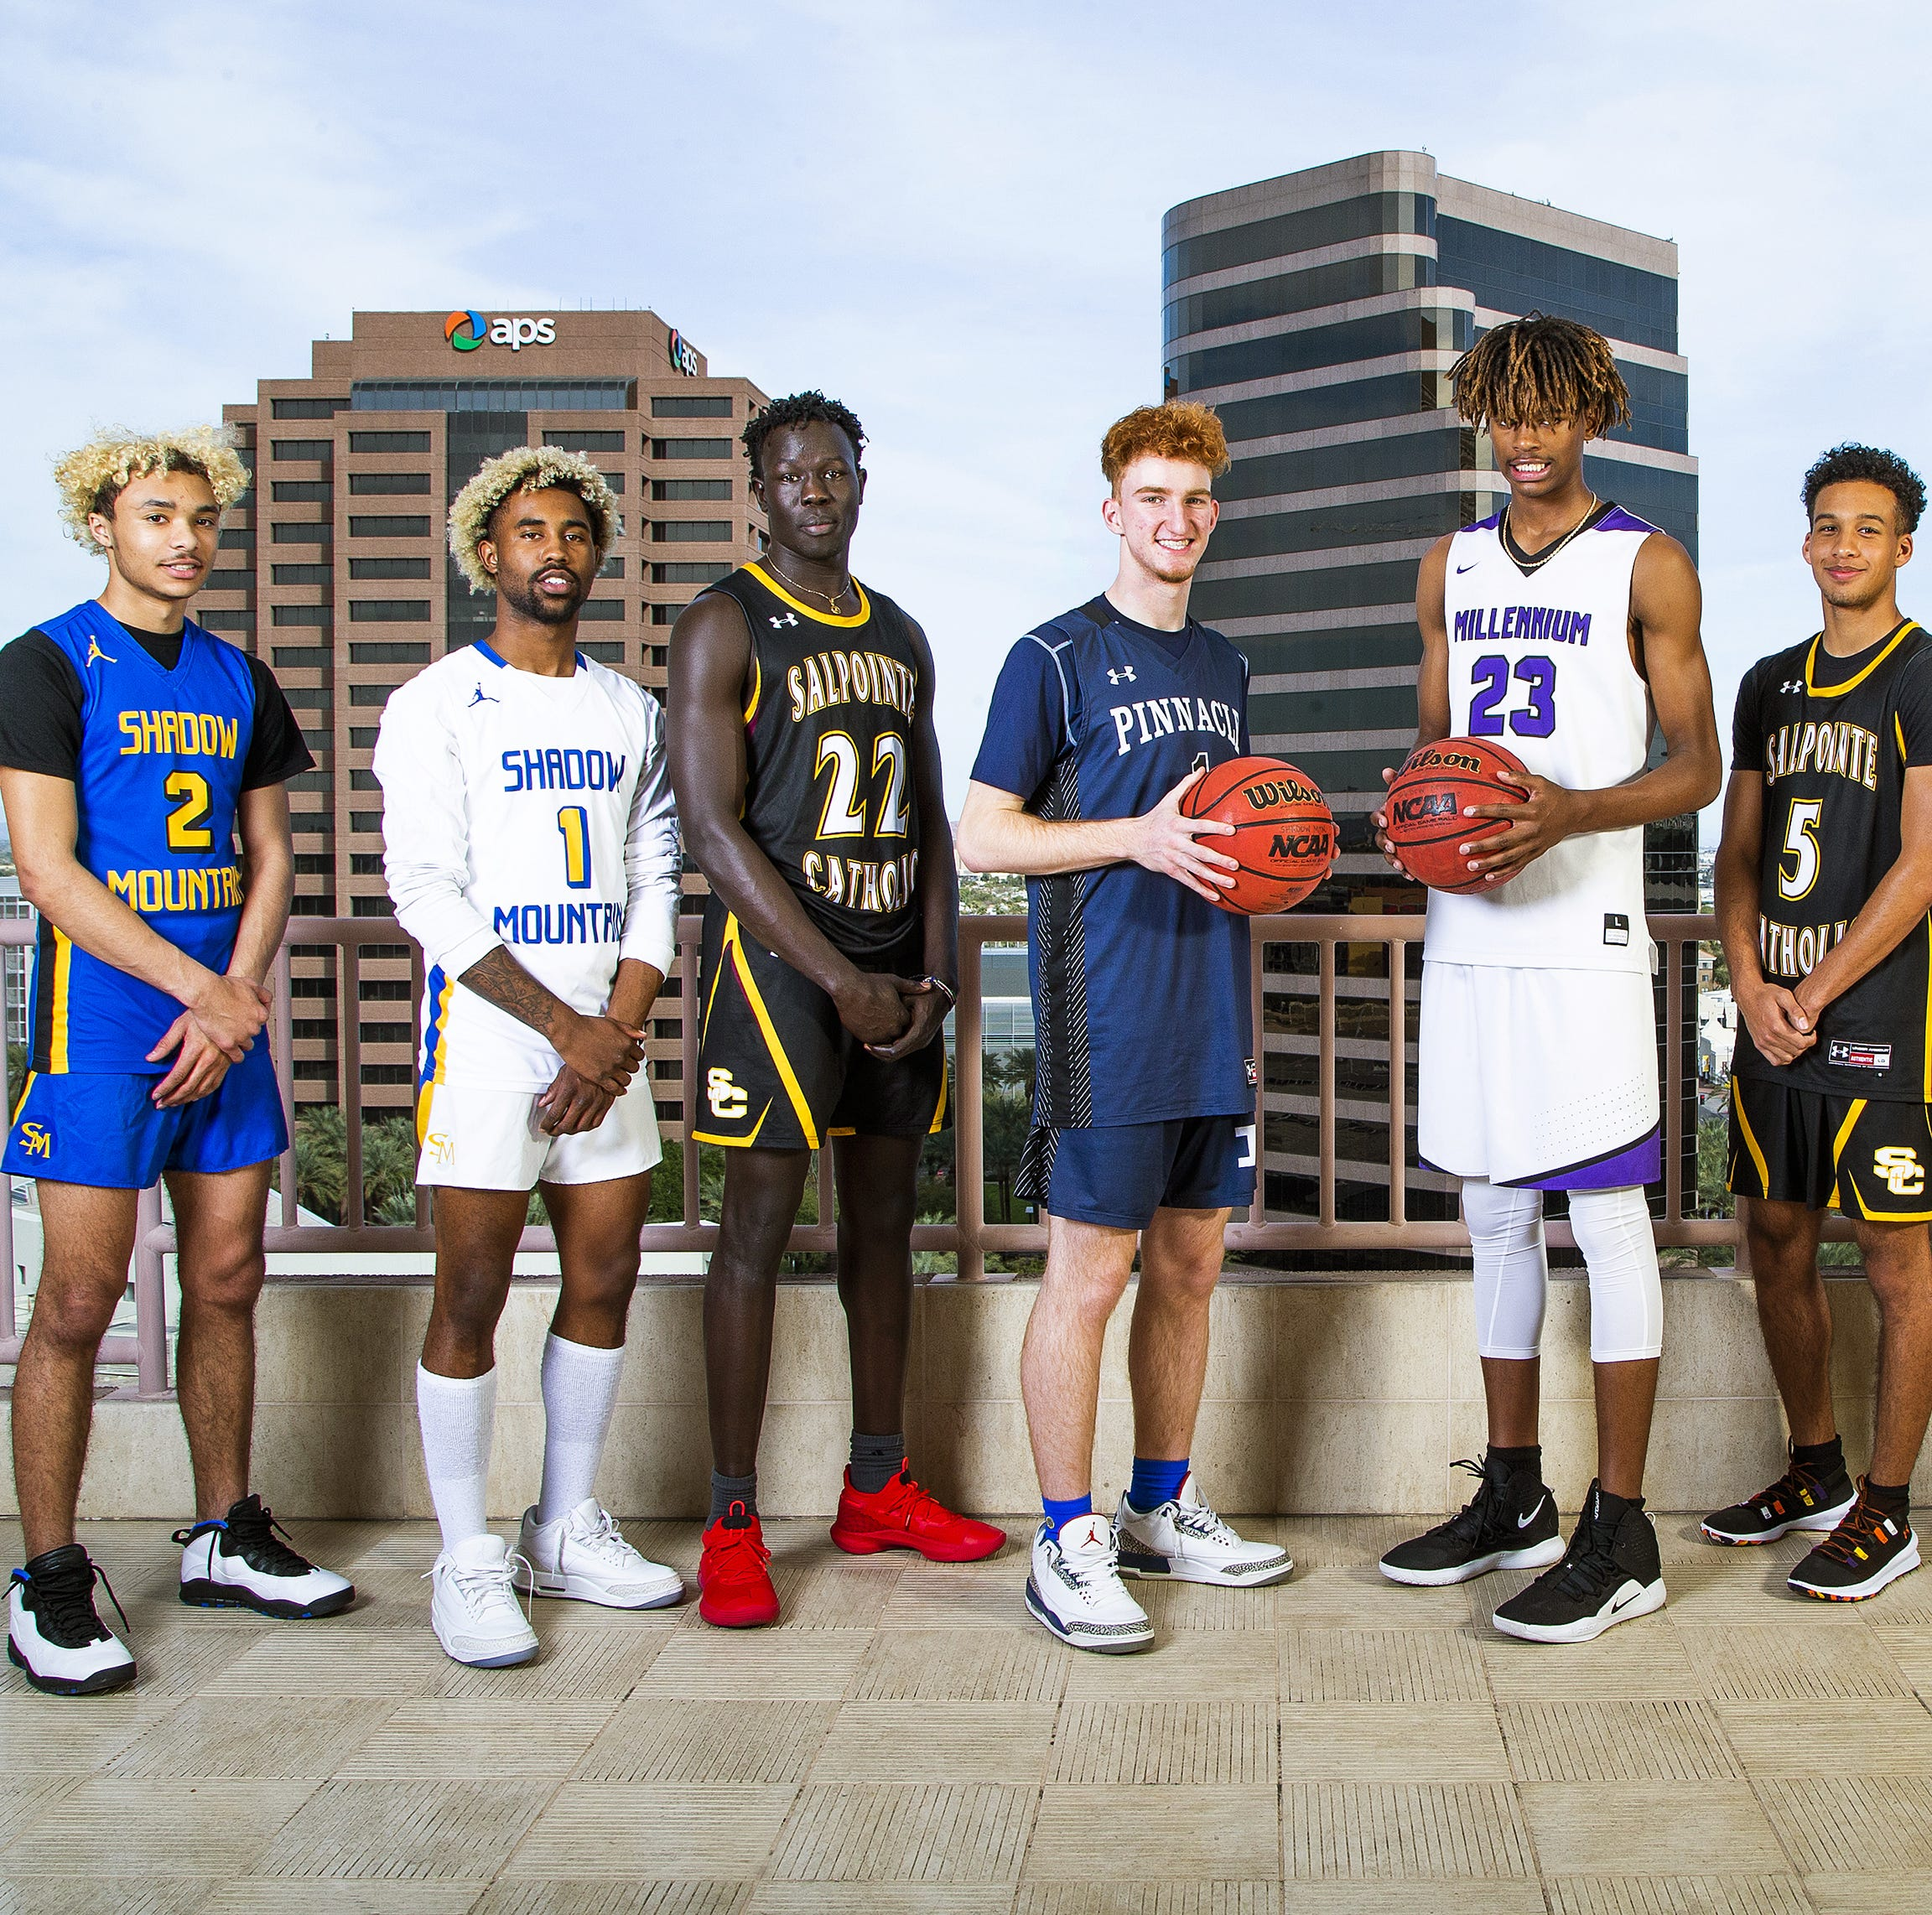 All-Arizona boys basketball team, Player of the Year finalists